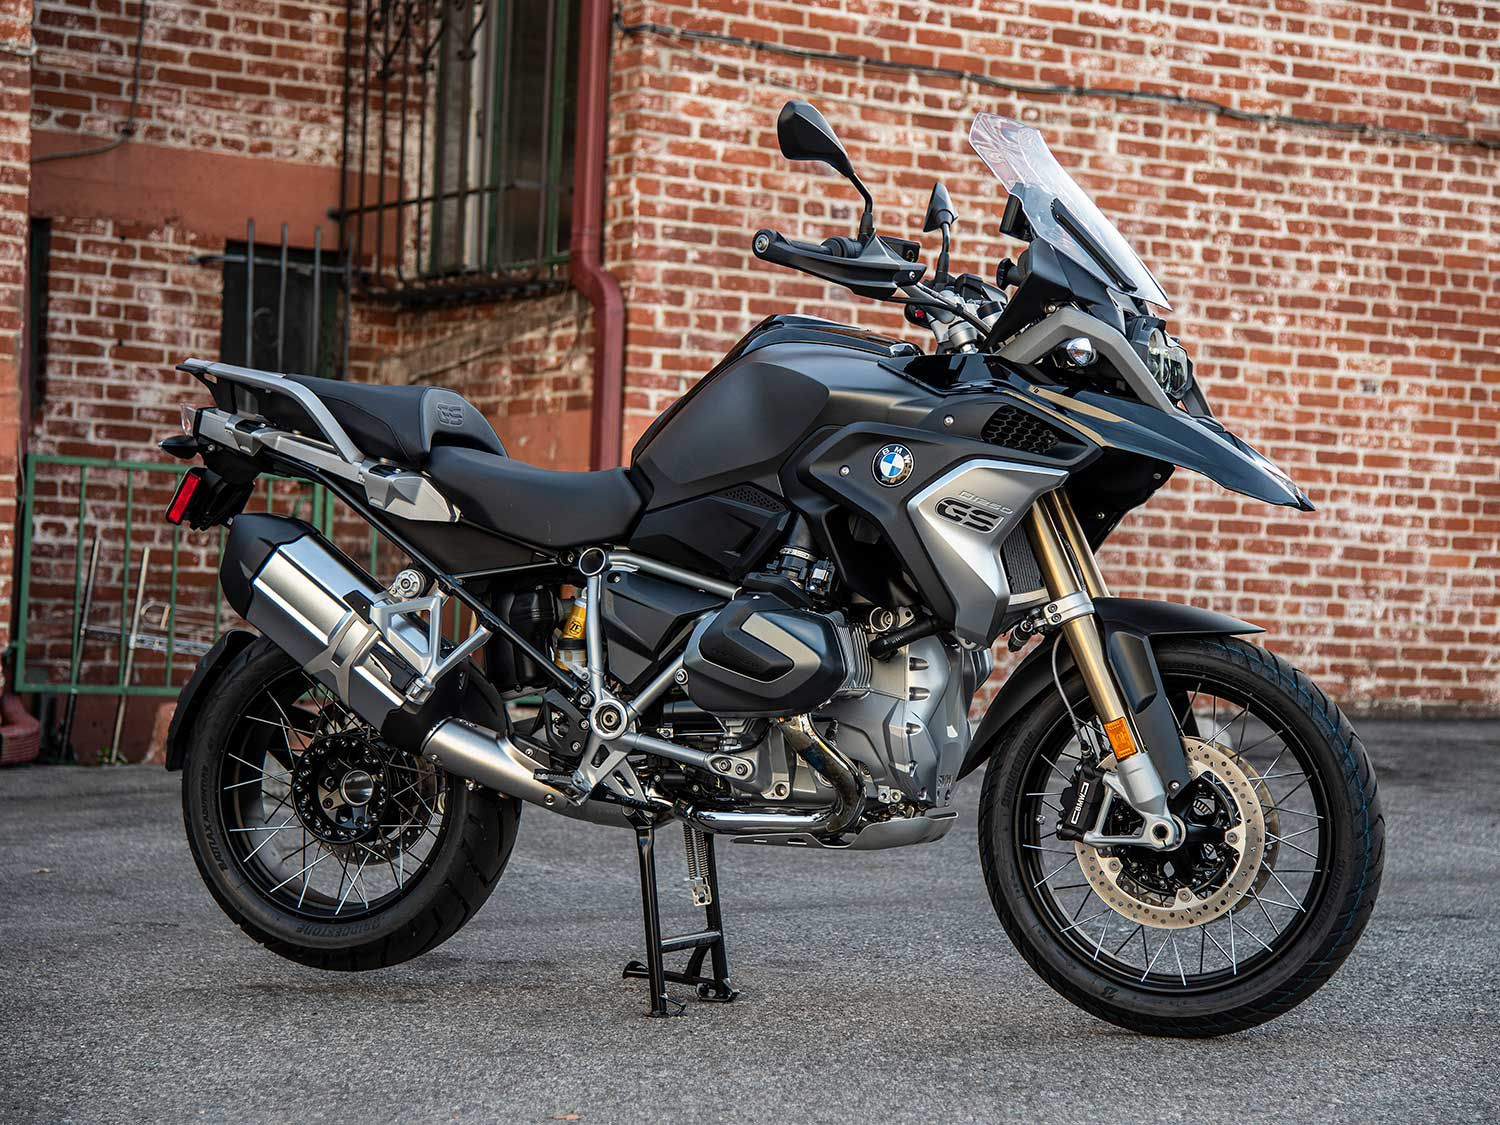 "<a  href=""https://www.motorcyclistonline.com/story/reviews/2020-bmw-r-1250-gs-urban-and-city-review/"">2020 BMW R 1250 GS Urban And City Review</a>"